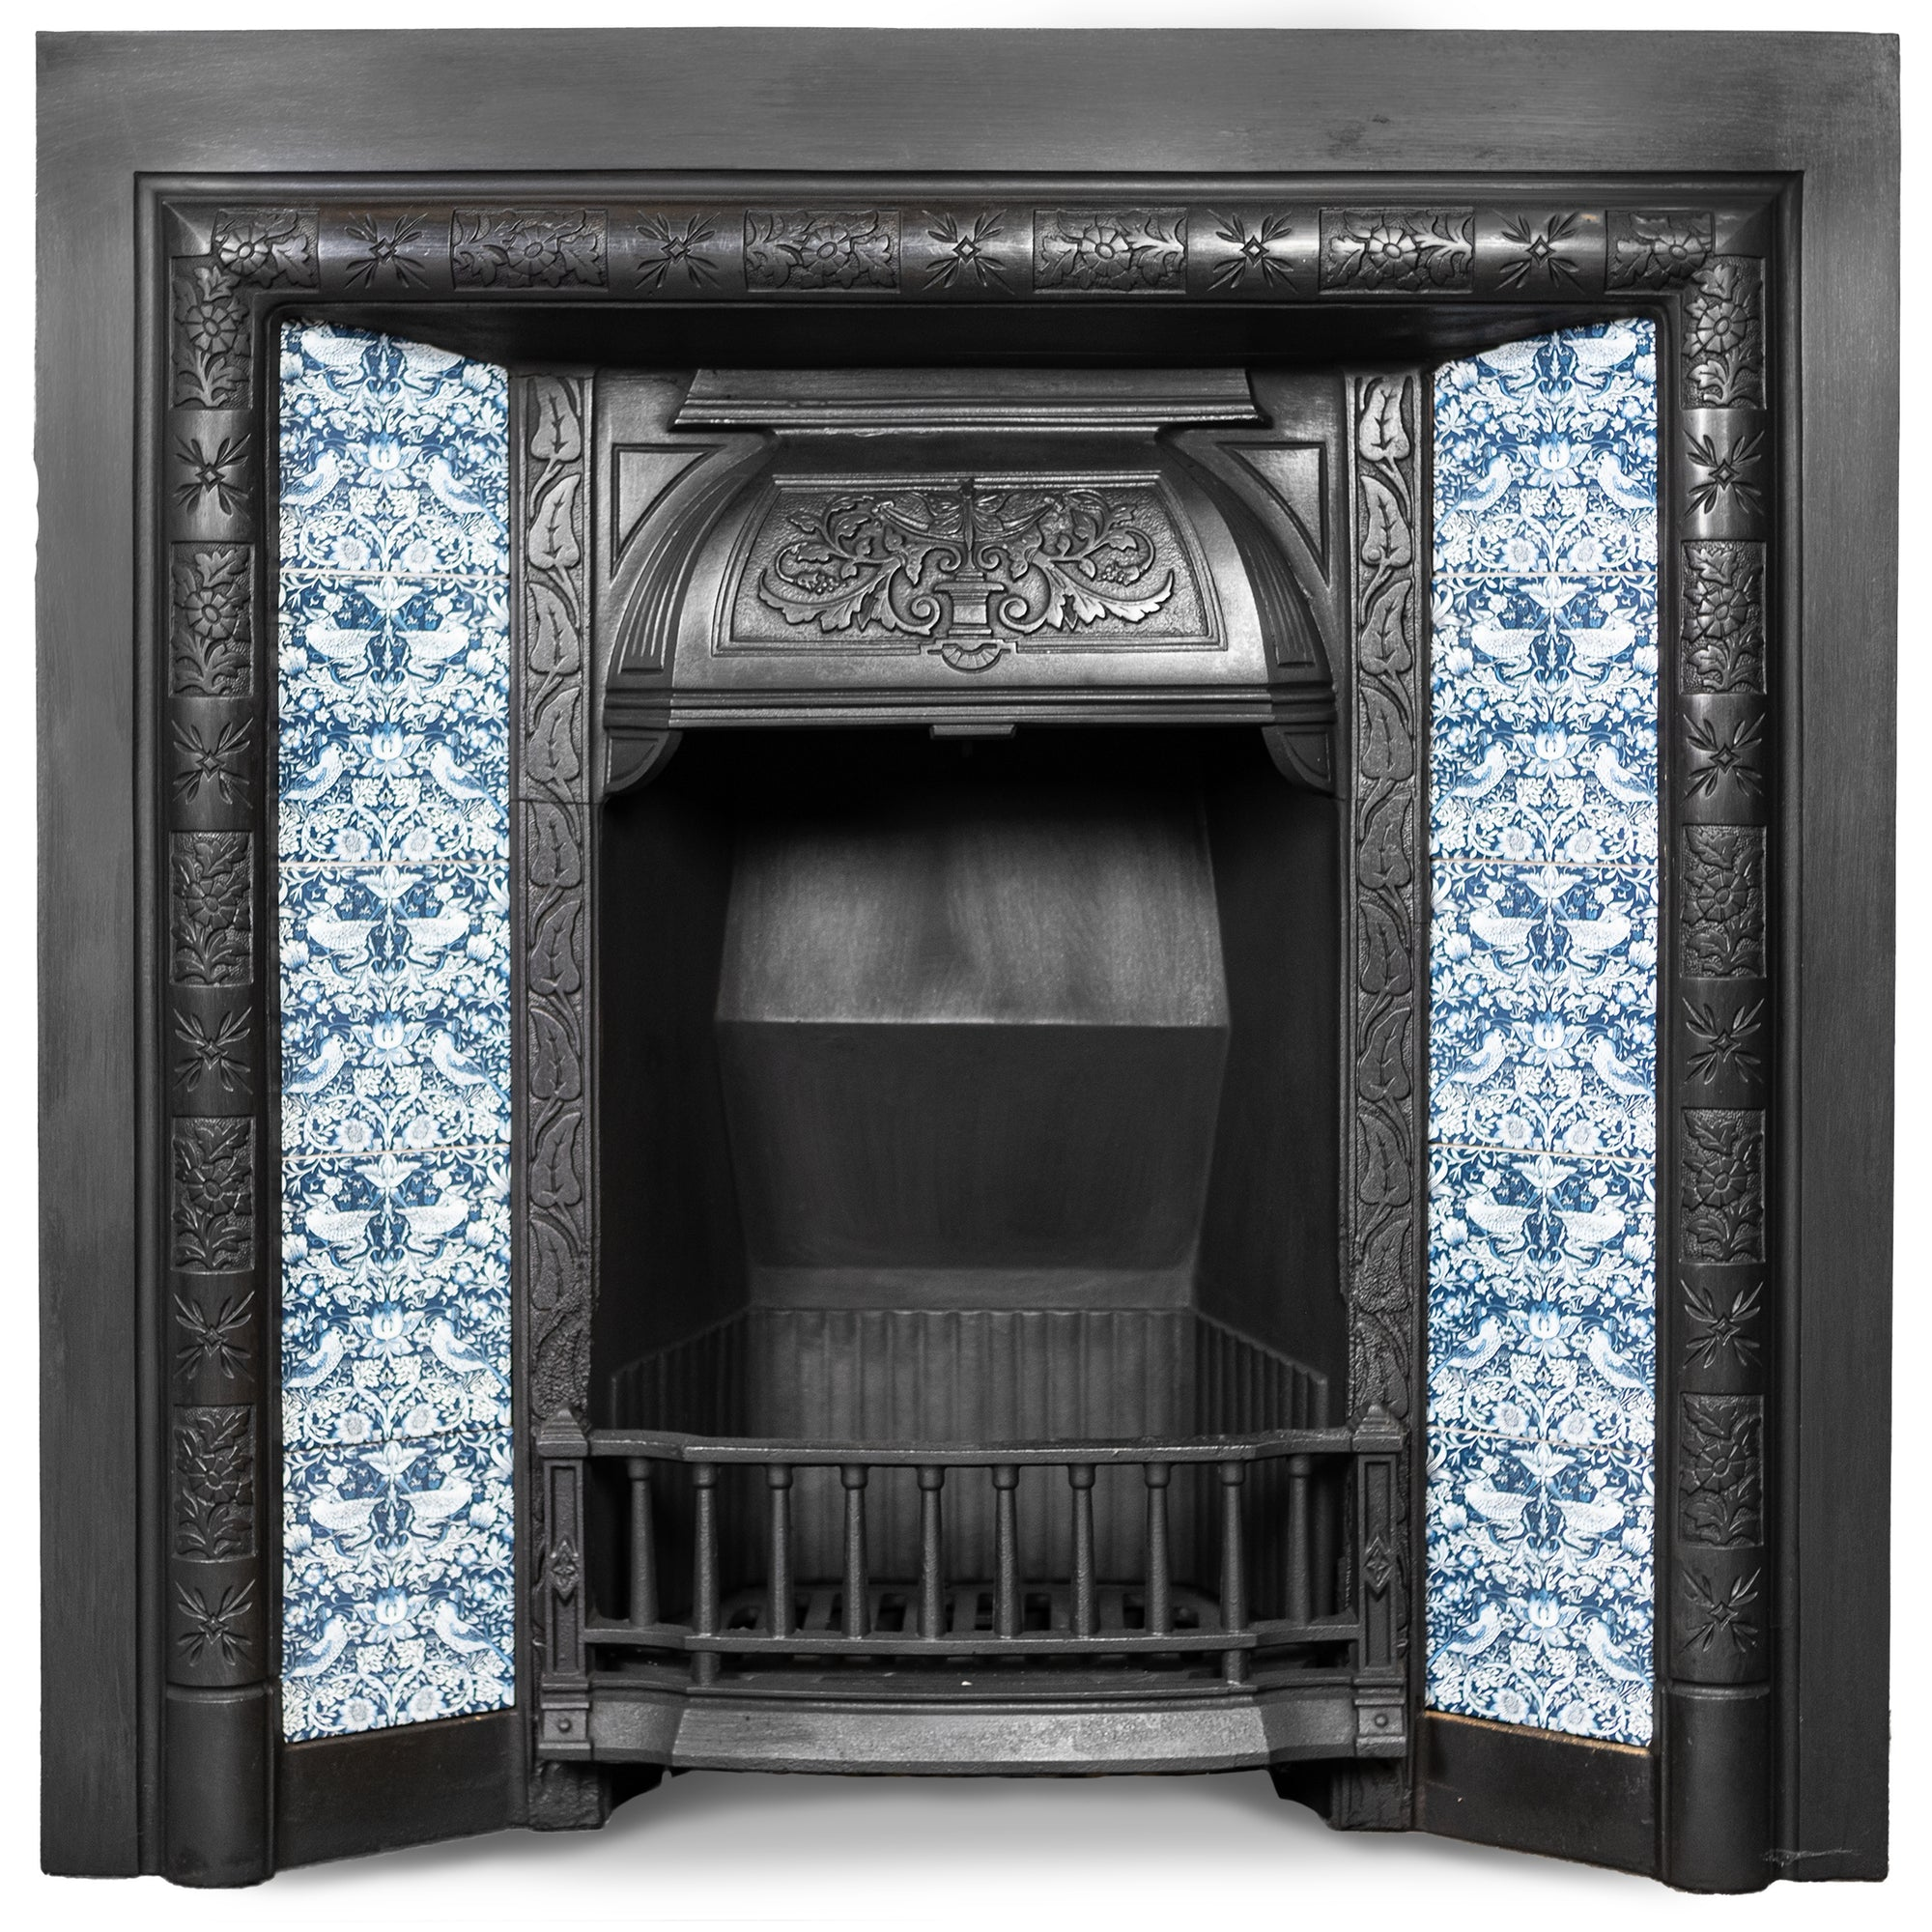 Antique Victorian Cast Iron Fireplace Insert with Blue Bird Tiles | The Architectural Forum